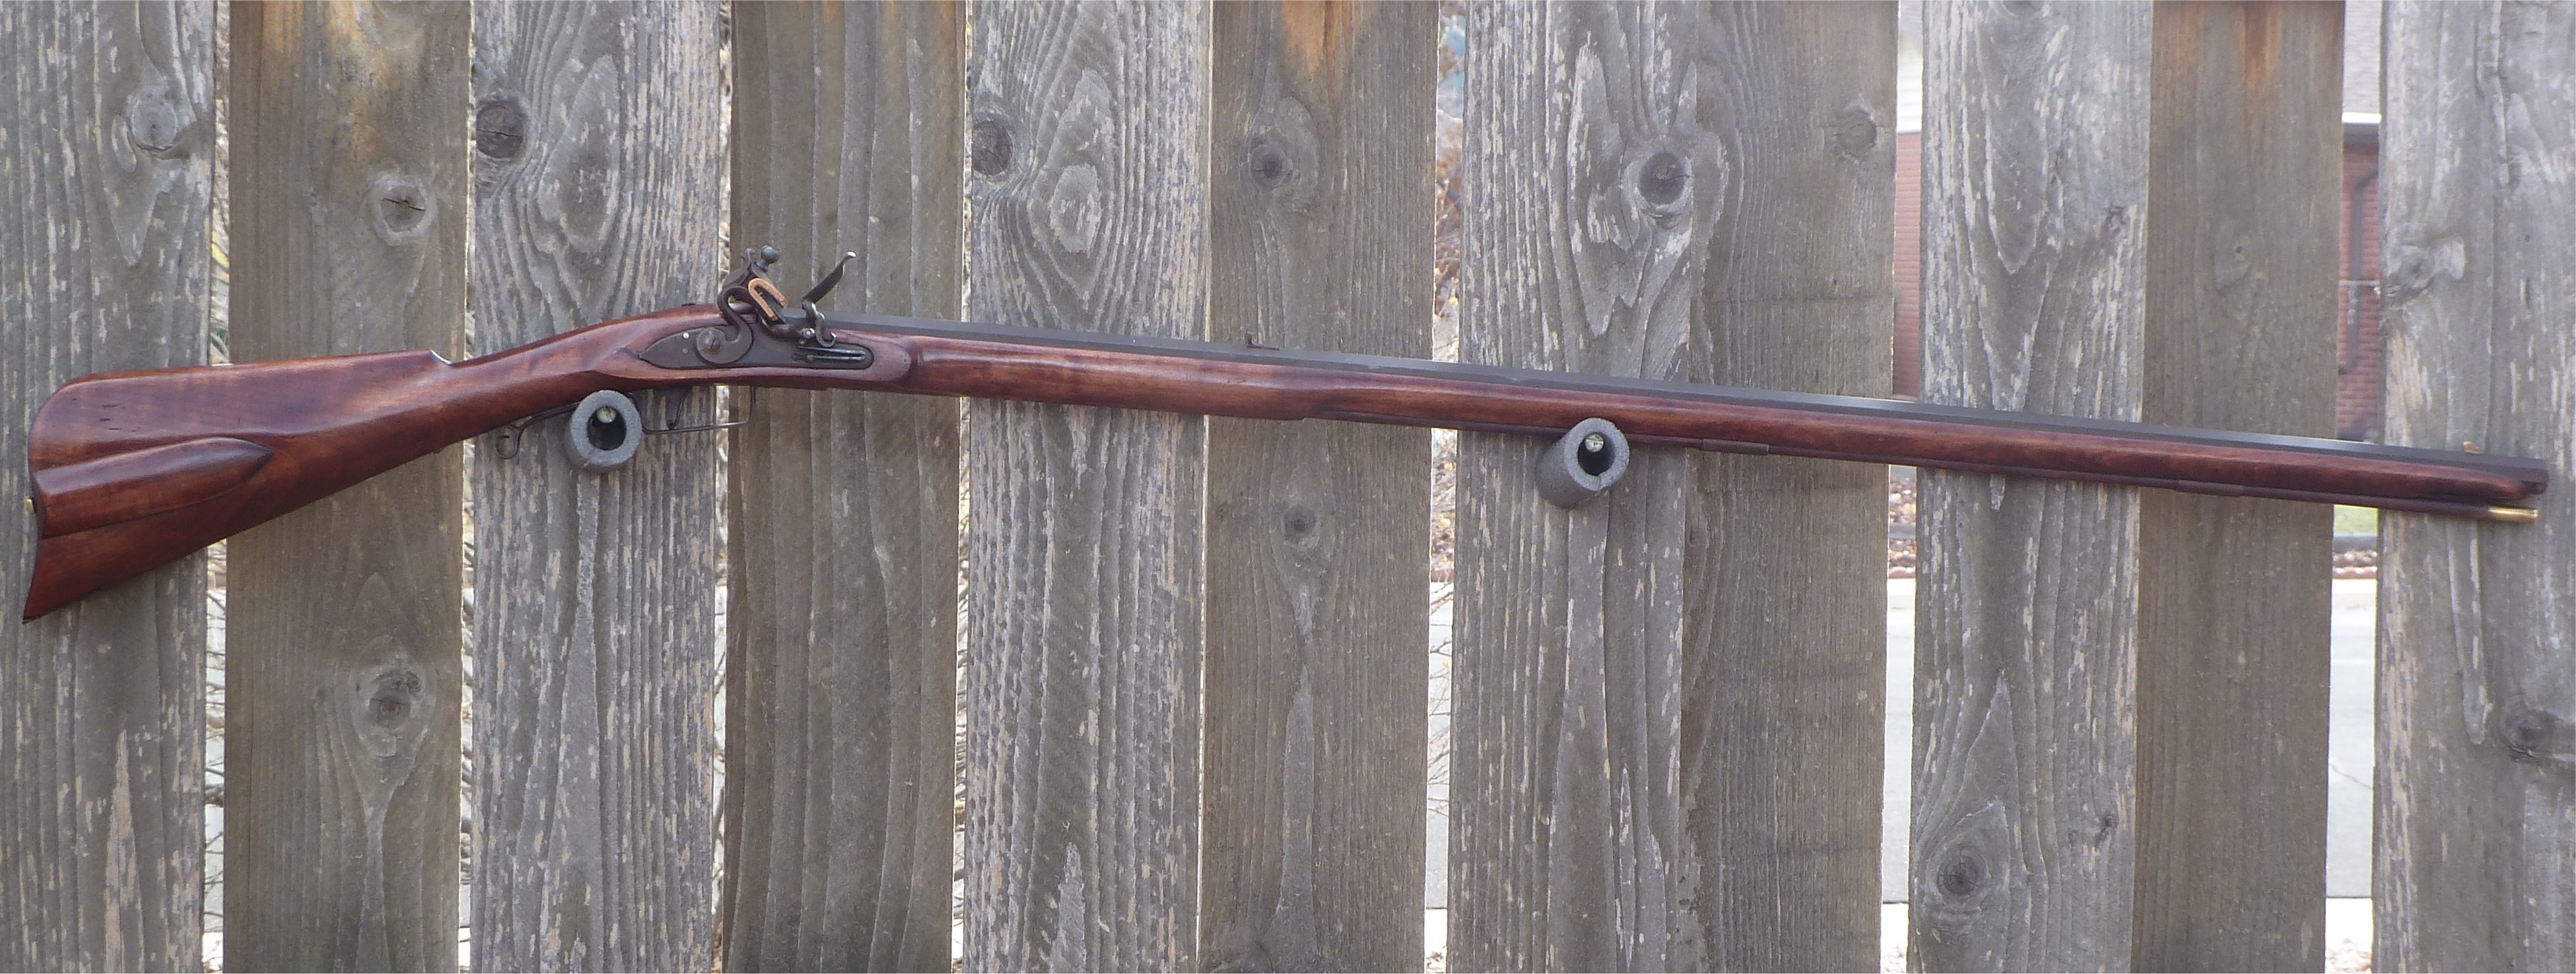 Traded unmentionable, modern firearm for Traditional Flintlock Ua2Atb